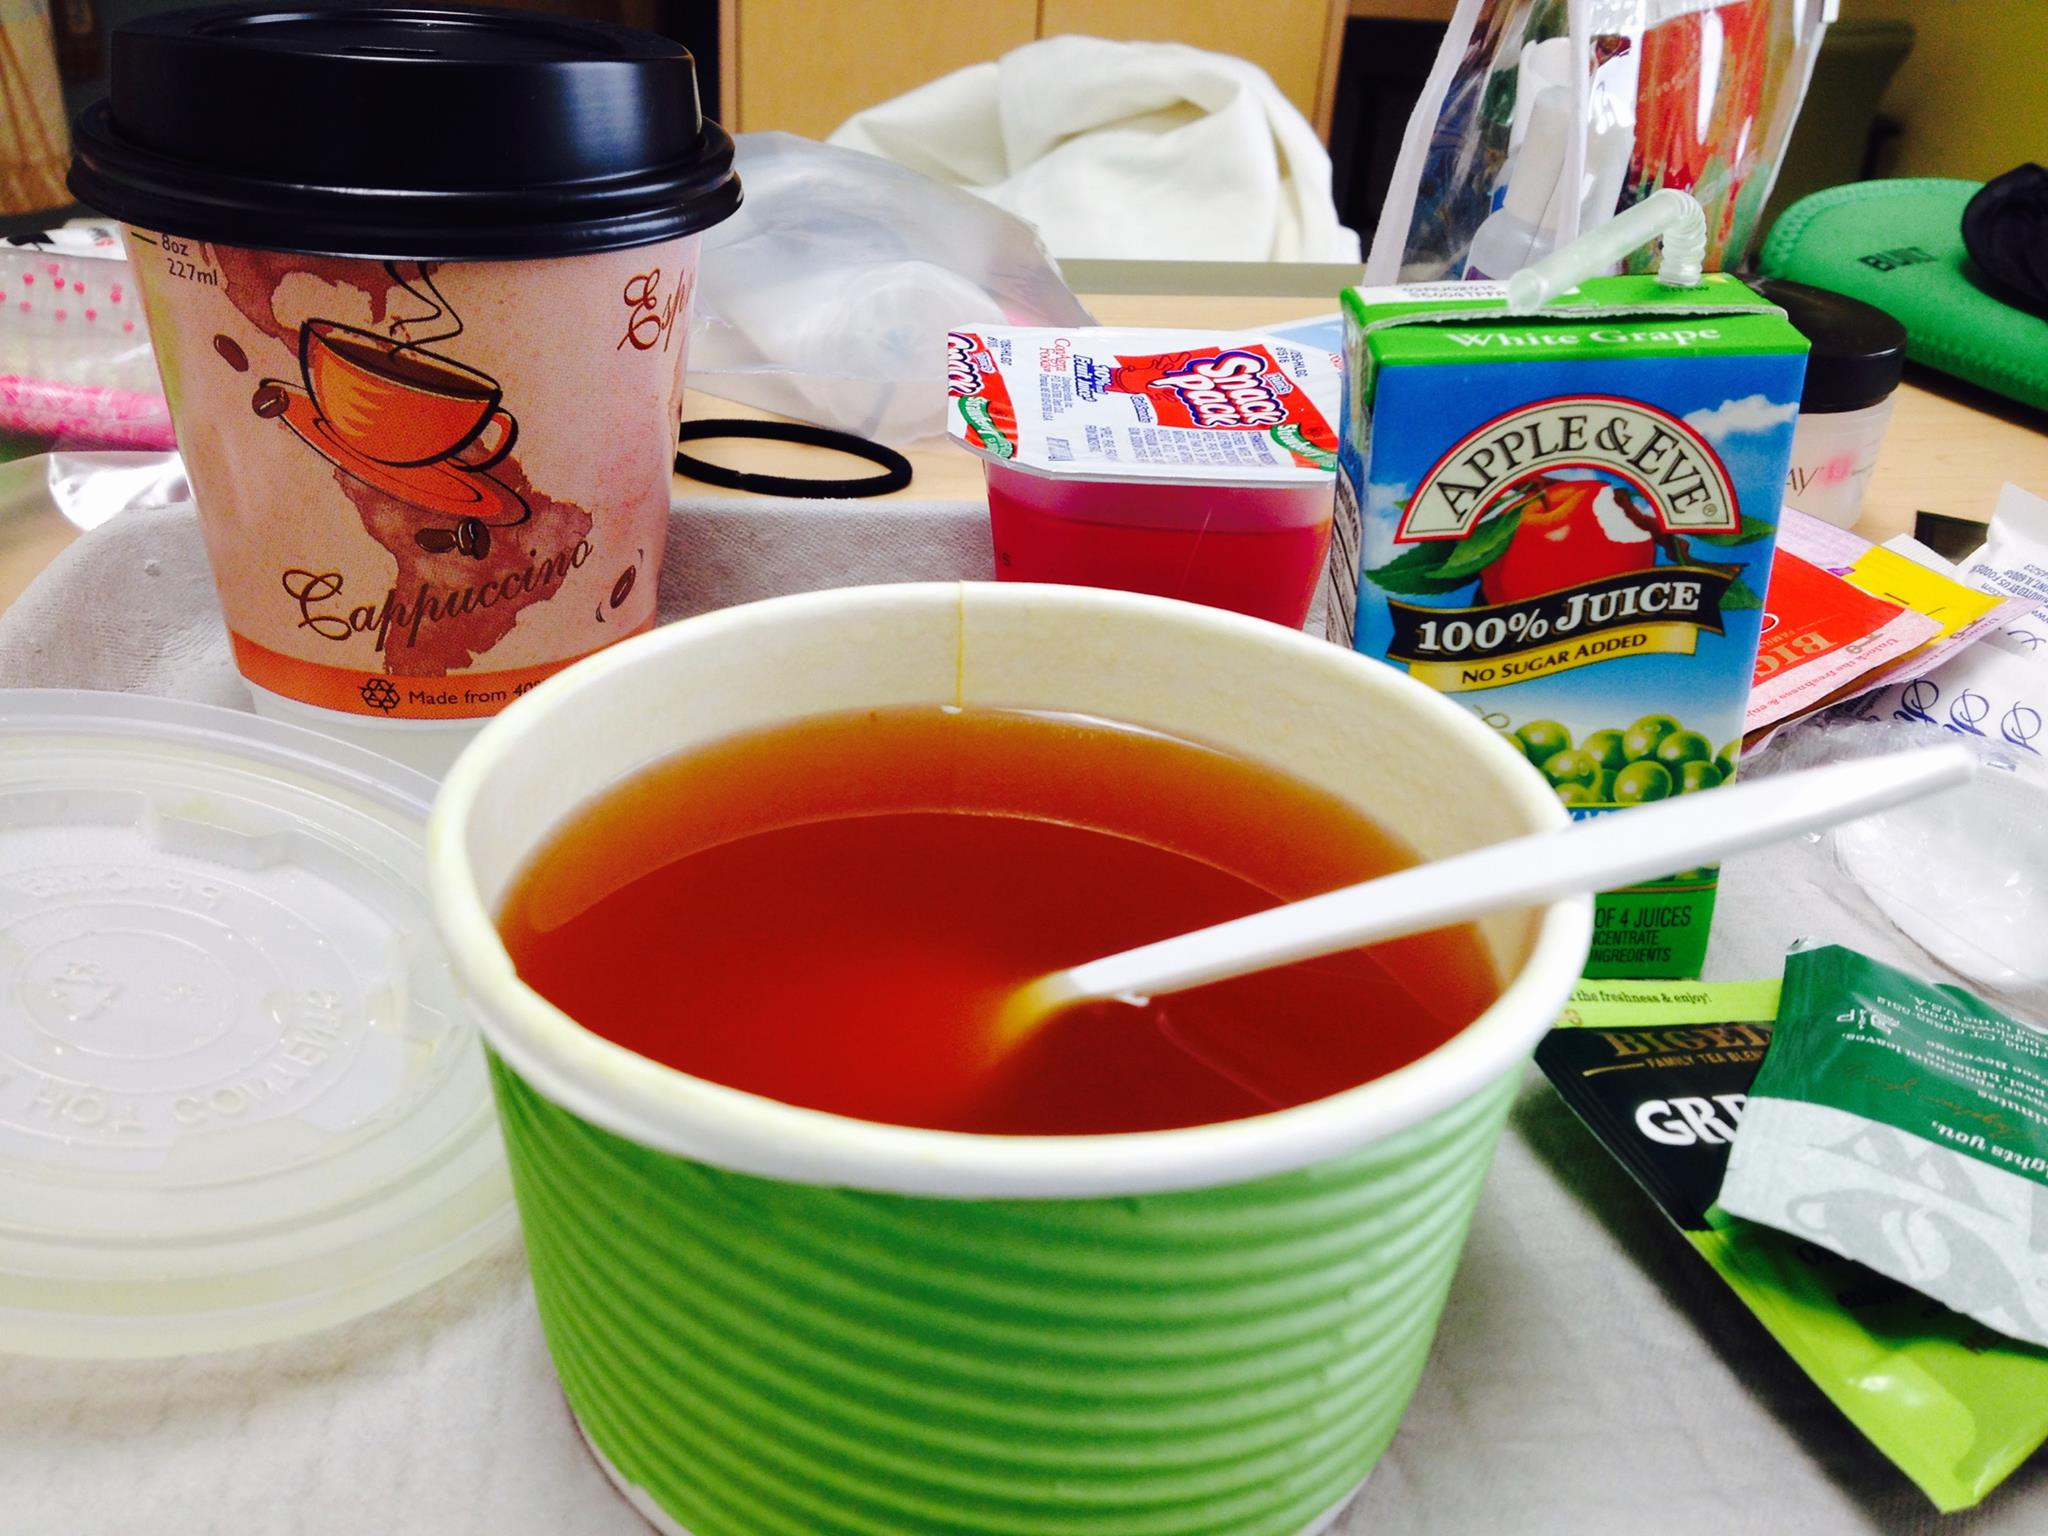 Picture of broth in a take away container, a box of apple juice, jello, and a to-go coffee cup from my first hospitalization.